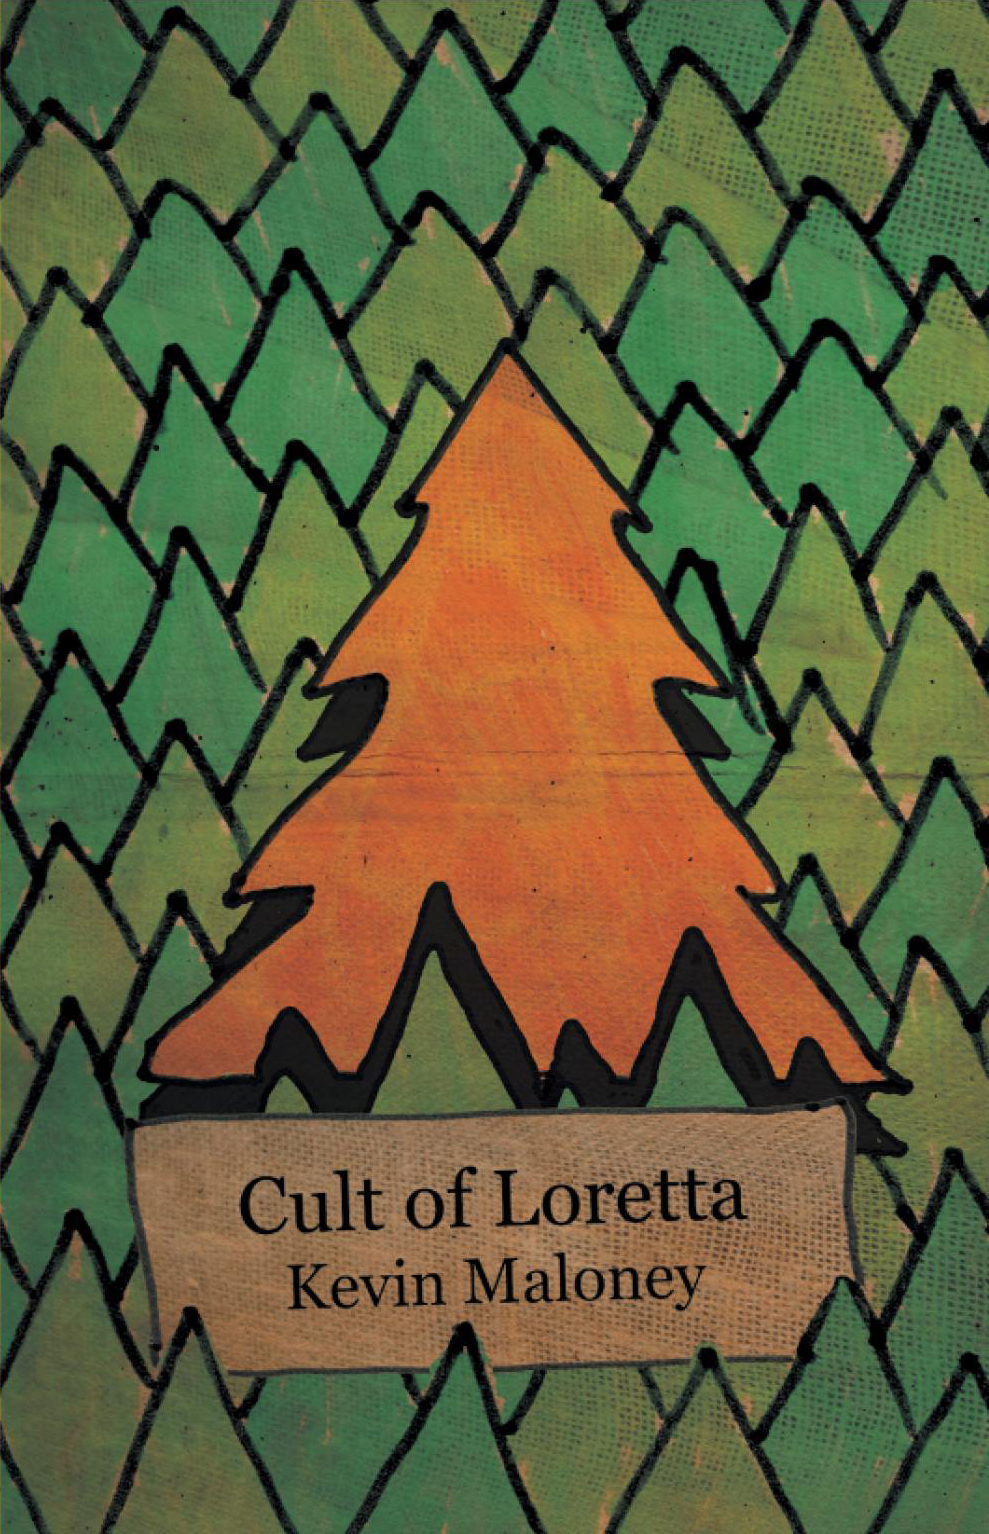 Cult of Loretta